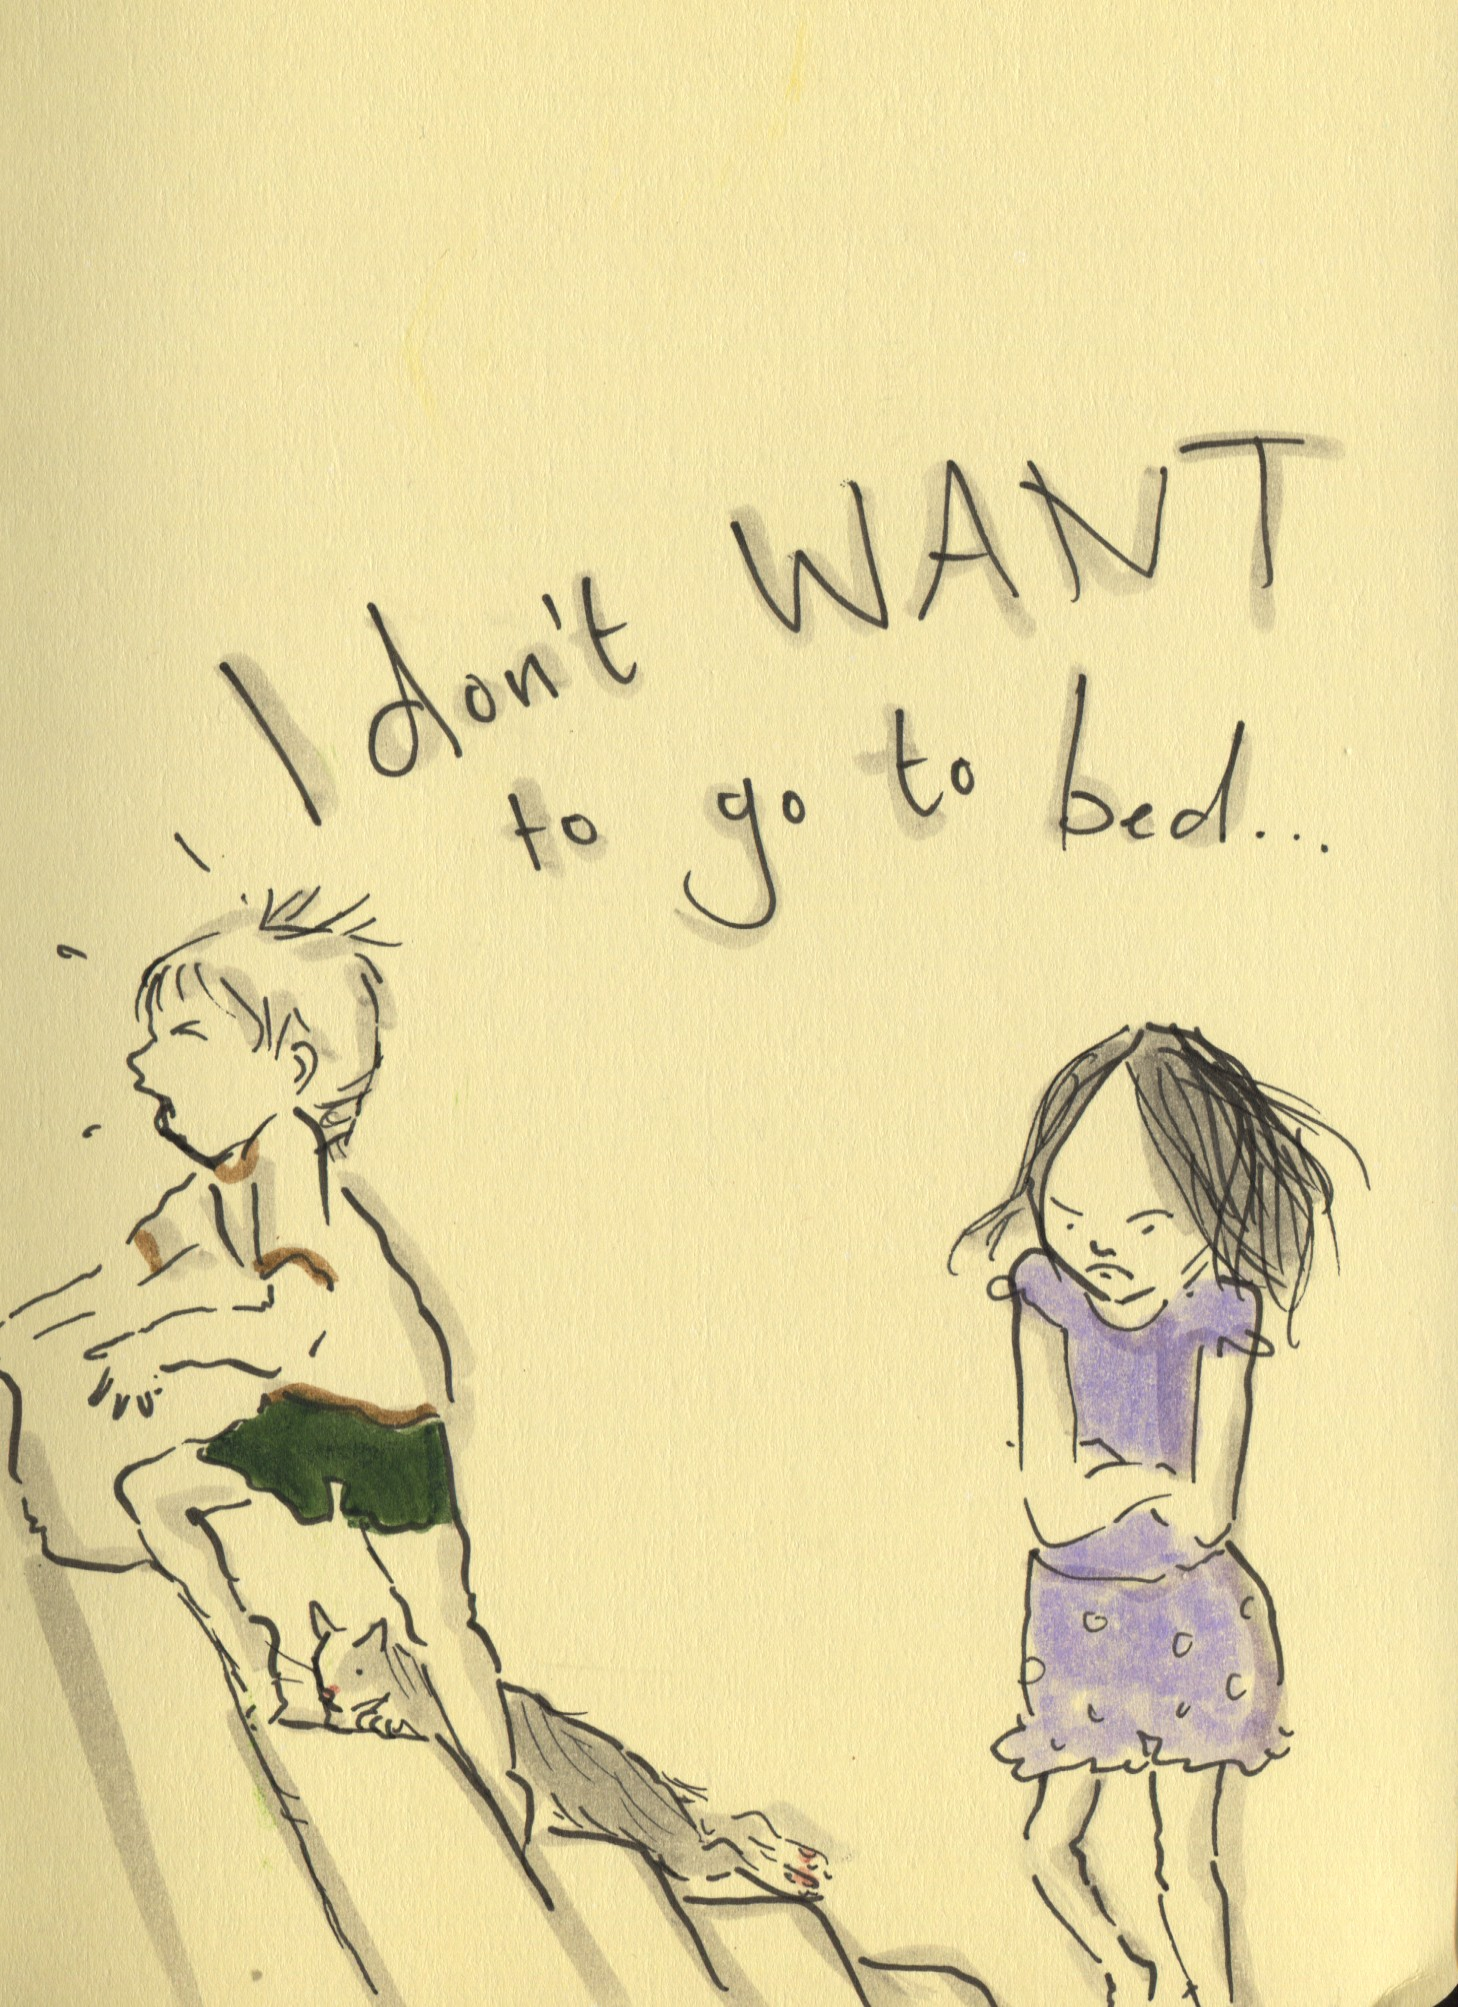 Do not want to sleep, what to do